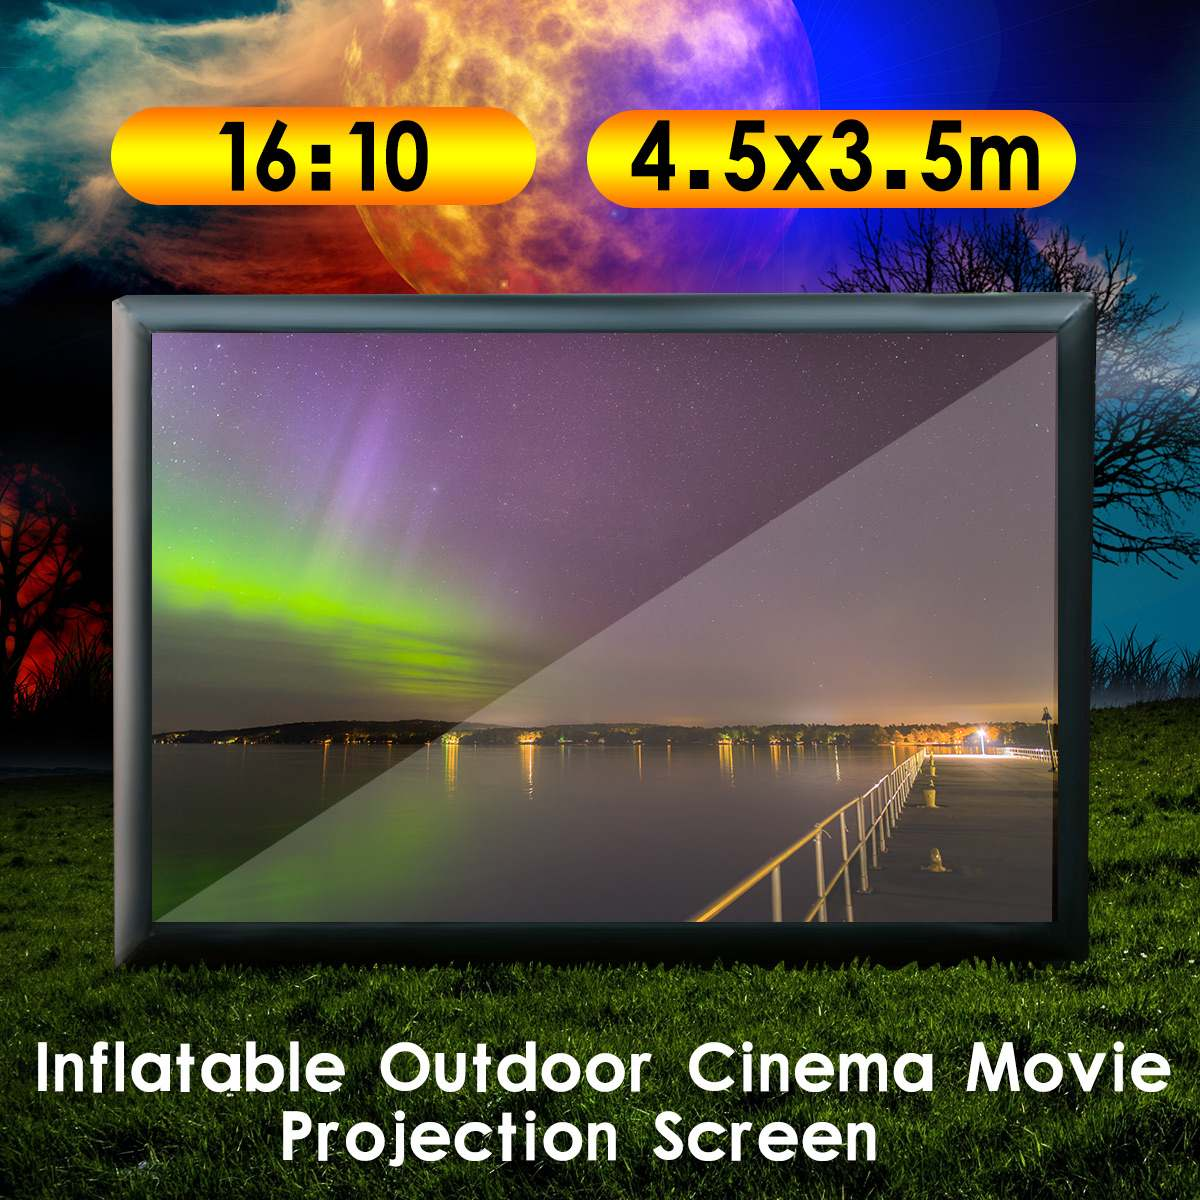 4.5x3.5M 16:10 Inflatable Movie Screen Outdoor Cinema Projection Home Theater Inflatable Film Screen with 370W Air Pump